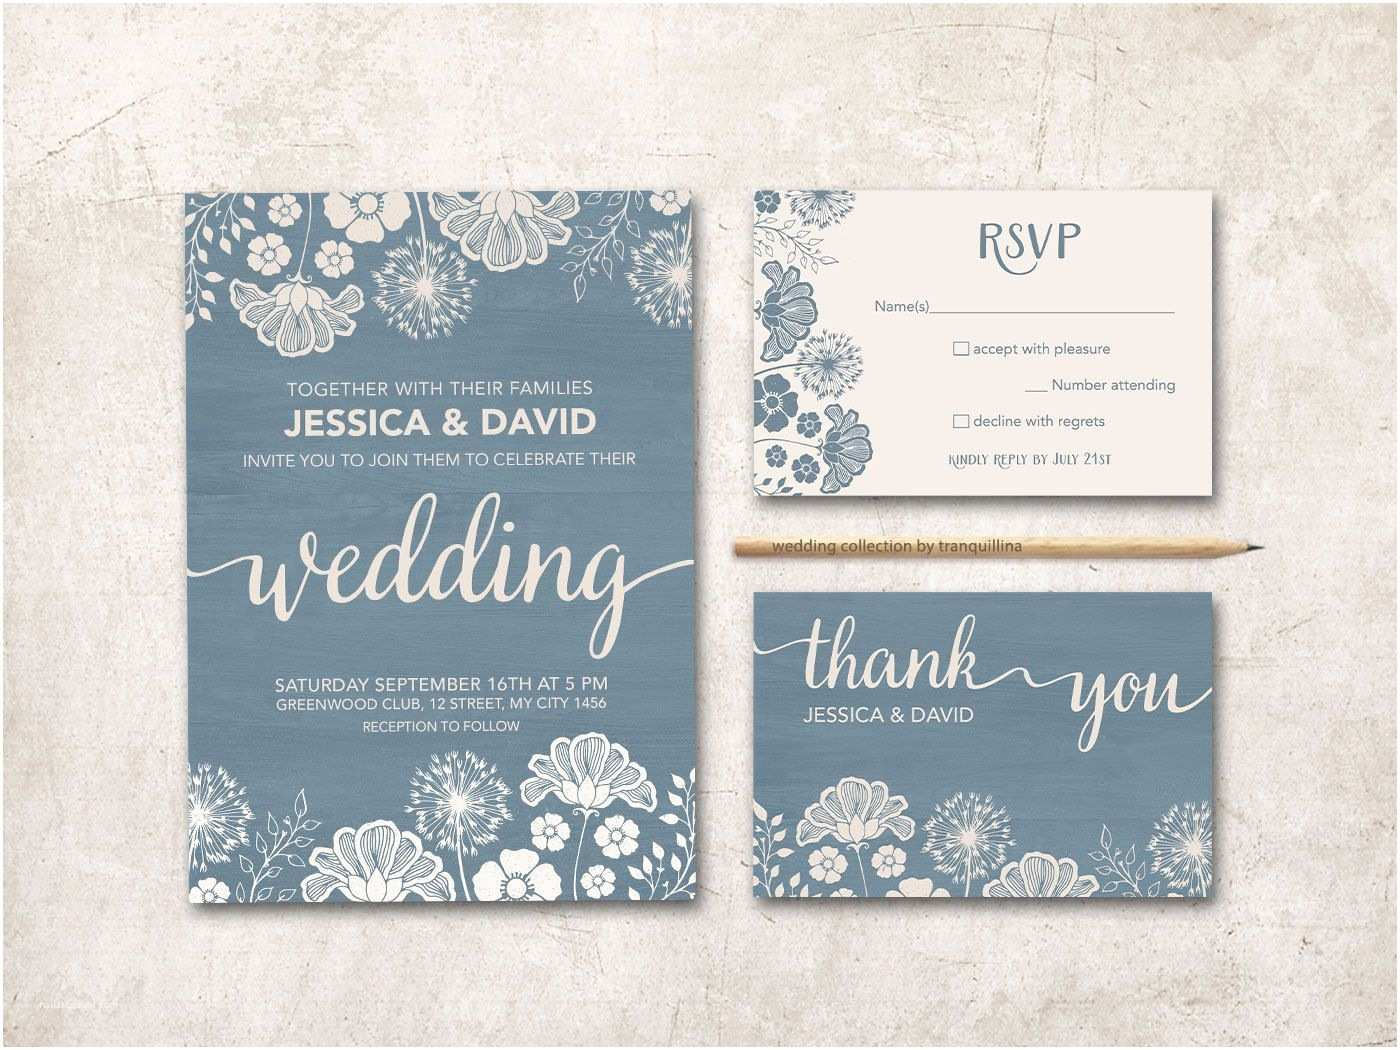 Dusty Blue and Cranberry Wedding Invitations Modern Wedding Invitation Printable Rustic Wedding